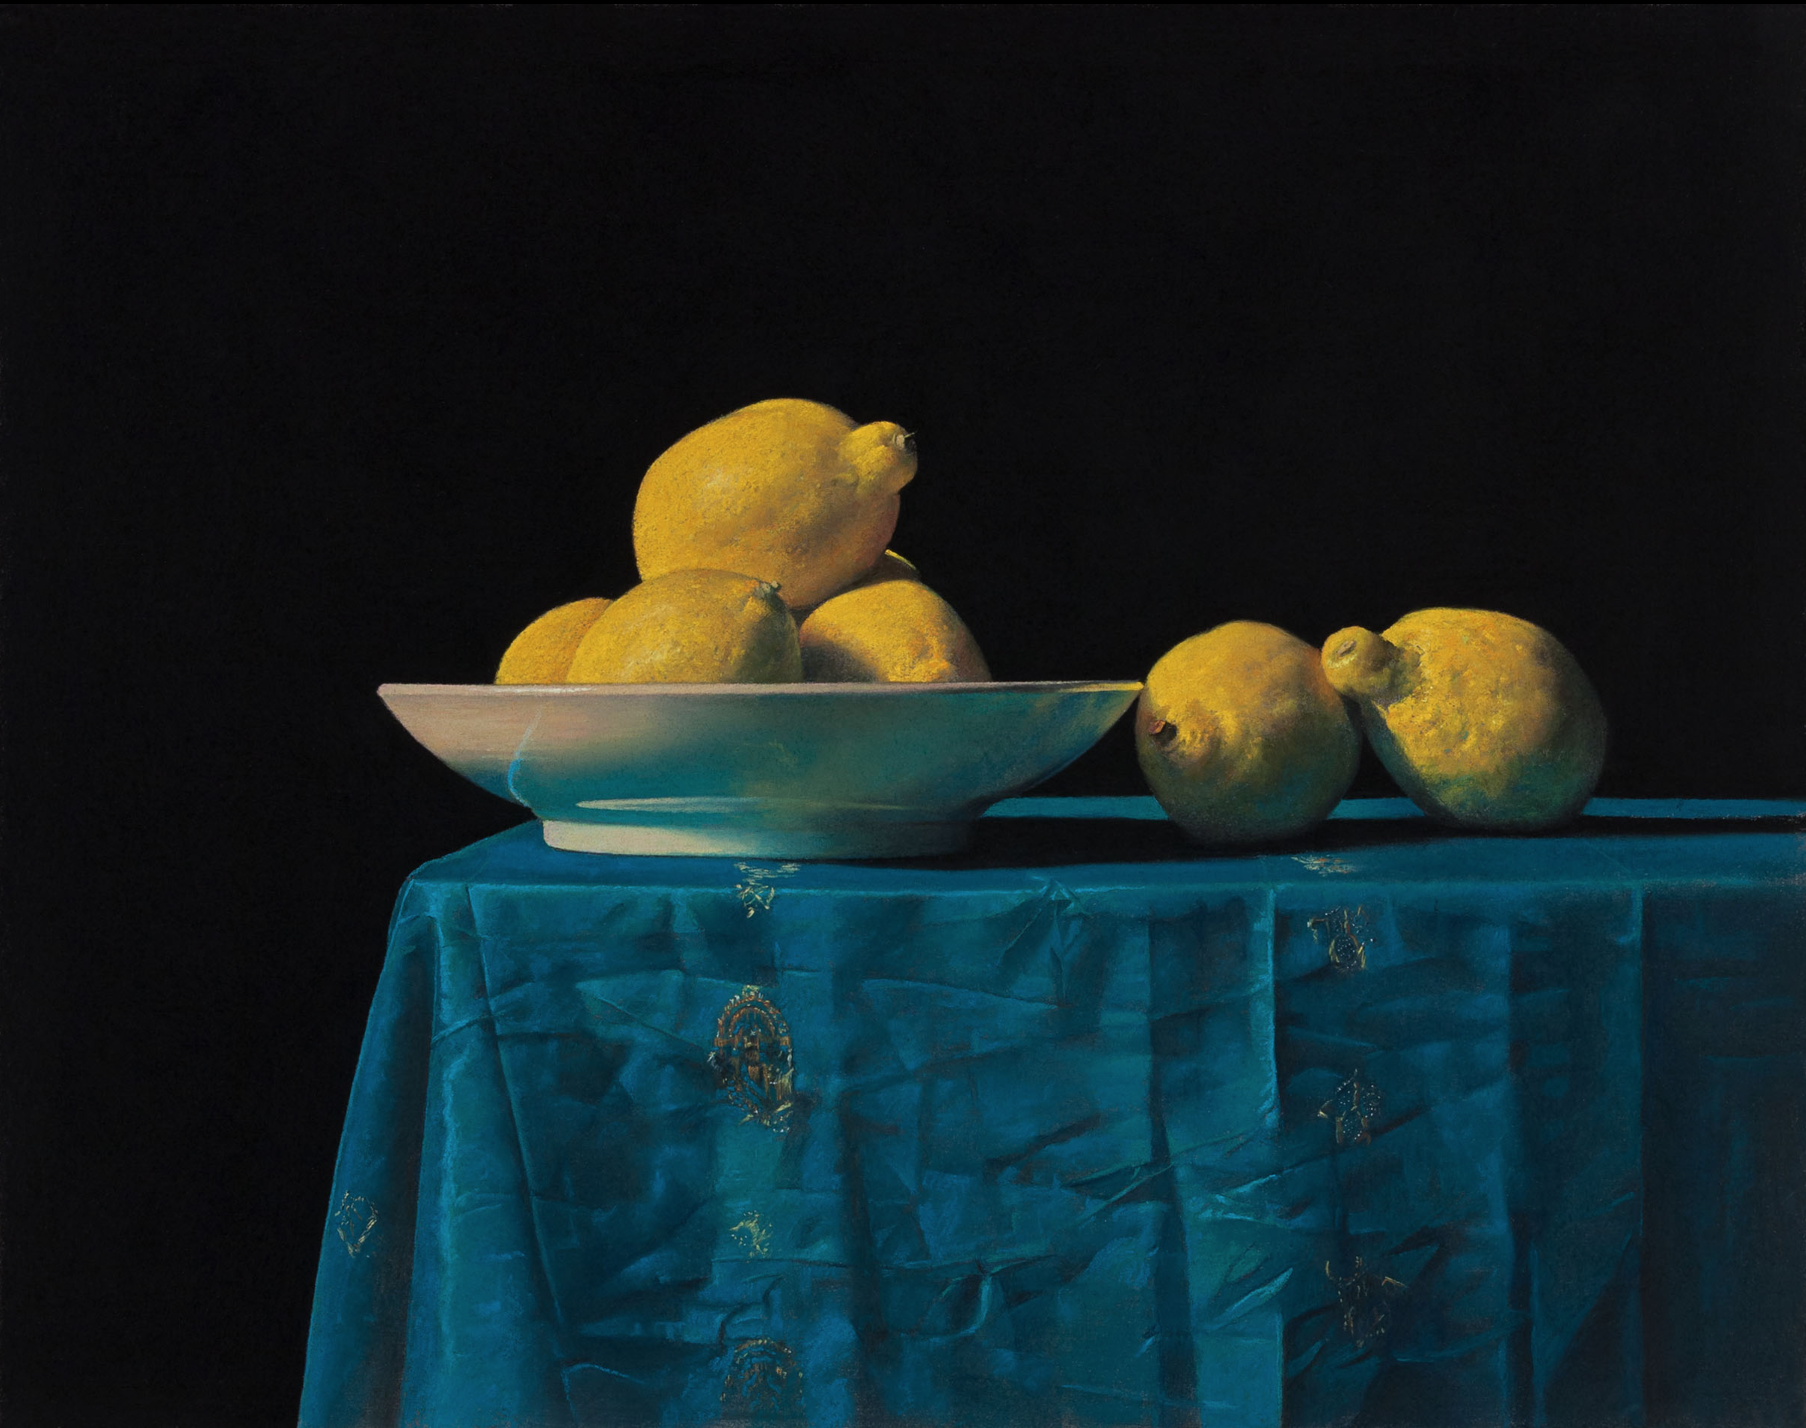 Ron Monsma, Lemons on a Table  Pastel, 15x19 in.